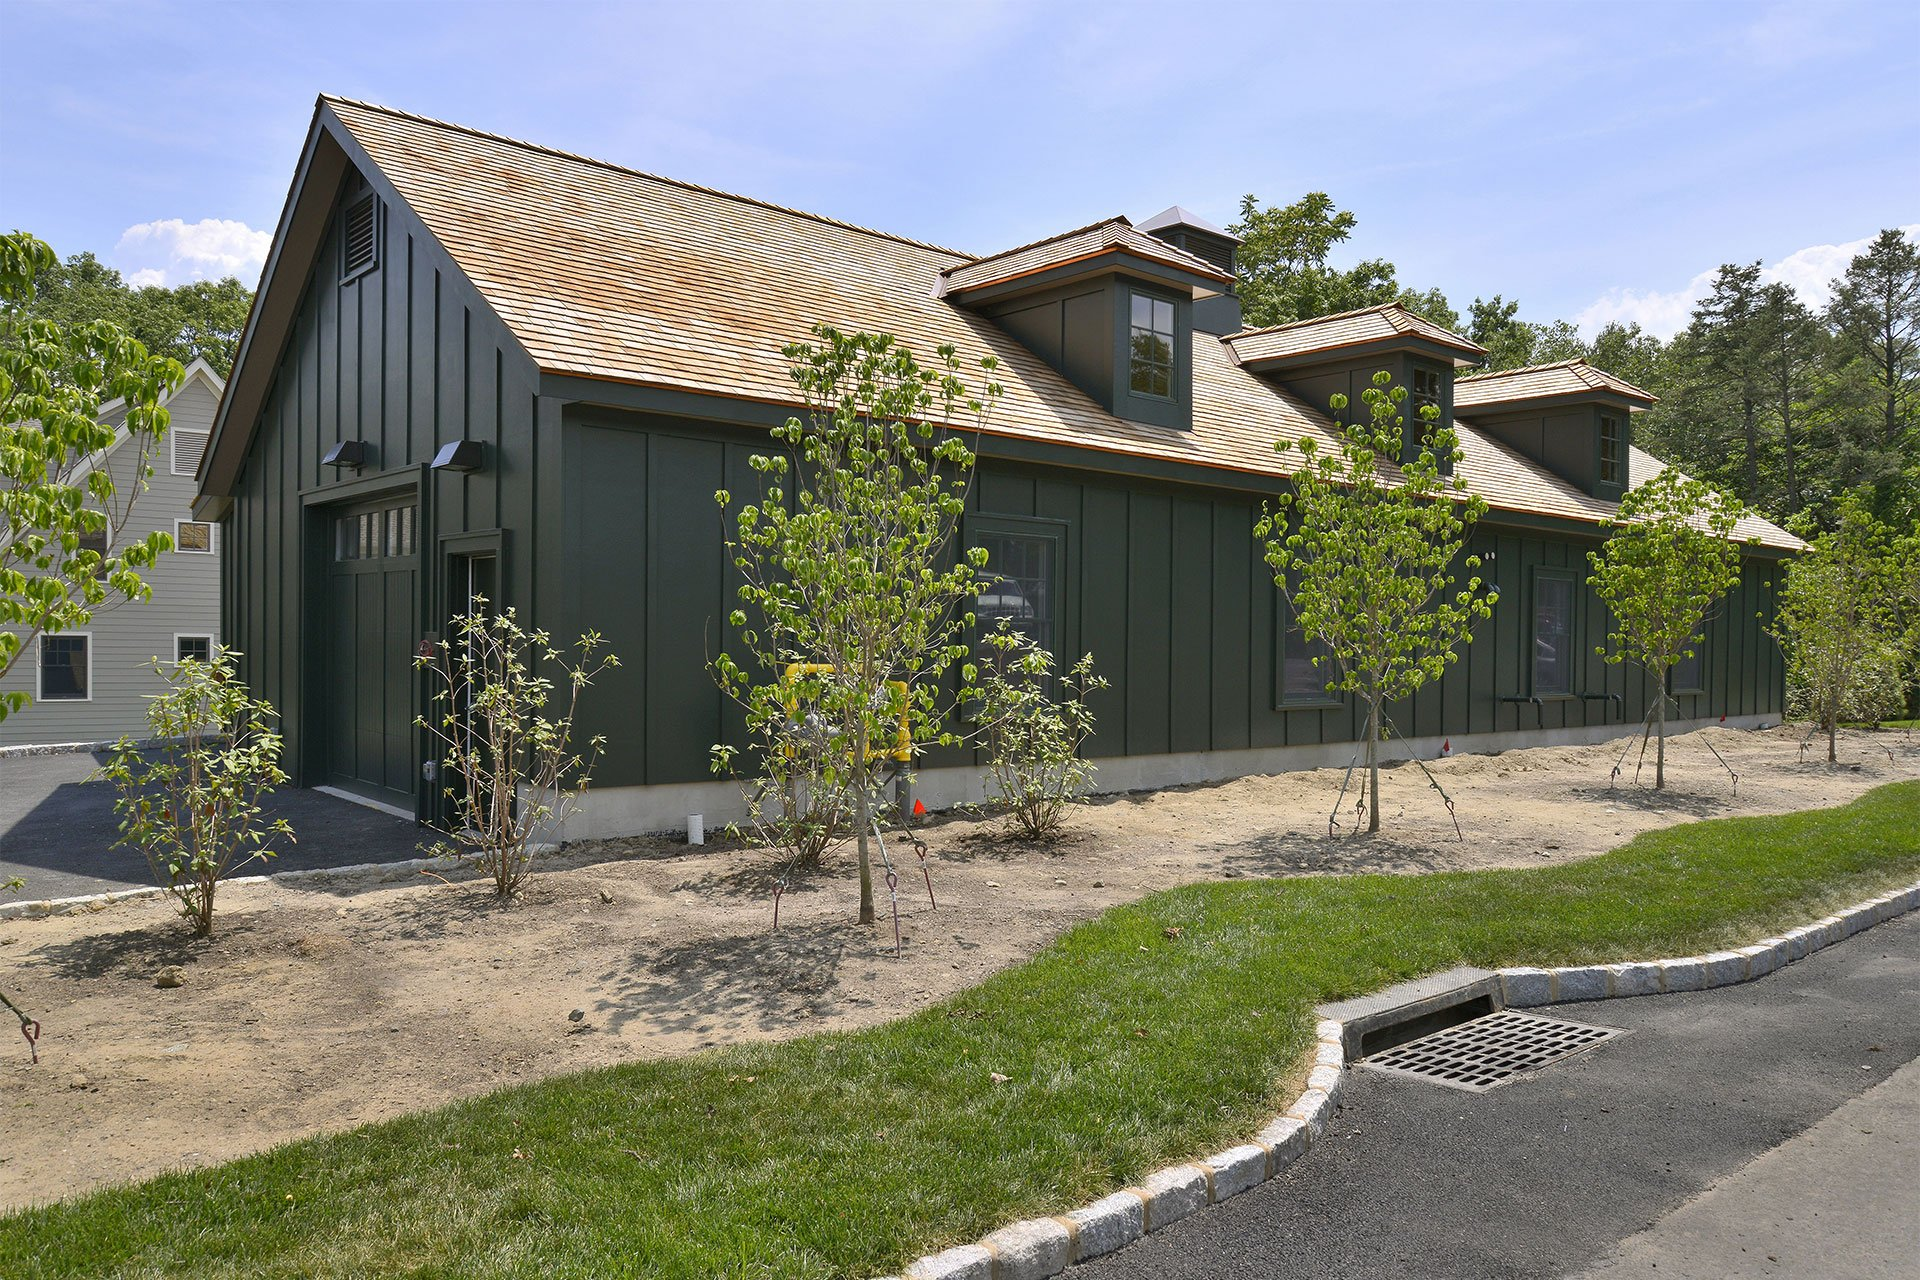 murphy-brothers-contracting-commercial-mamk-winged-foot_exterior-caddy-building-01